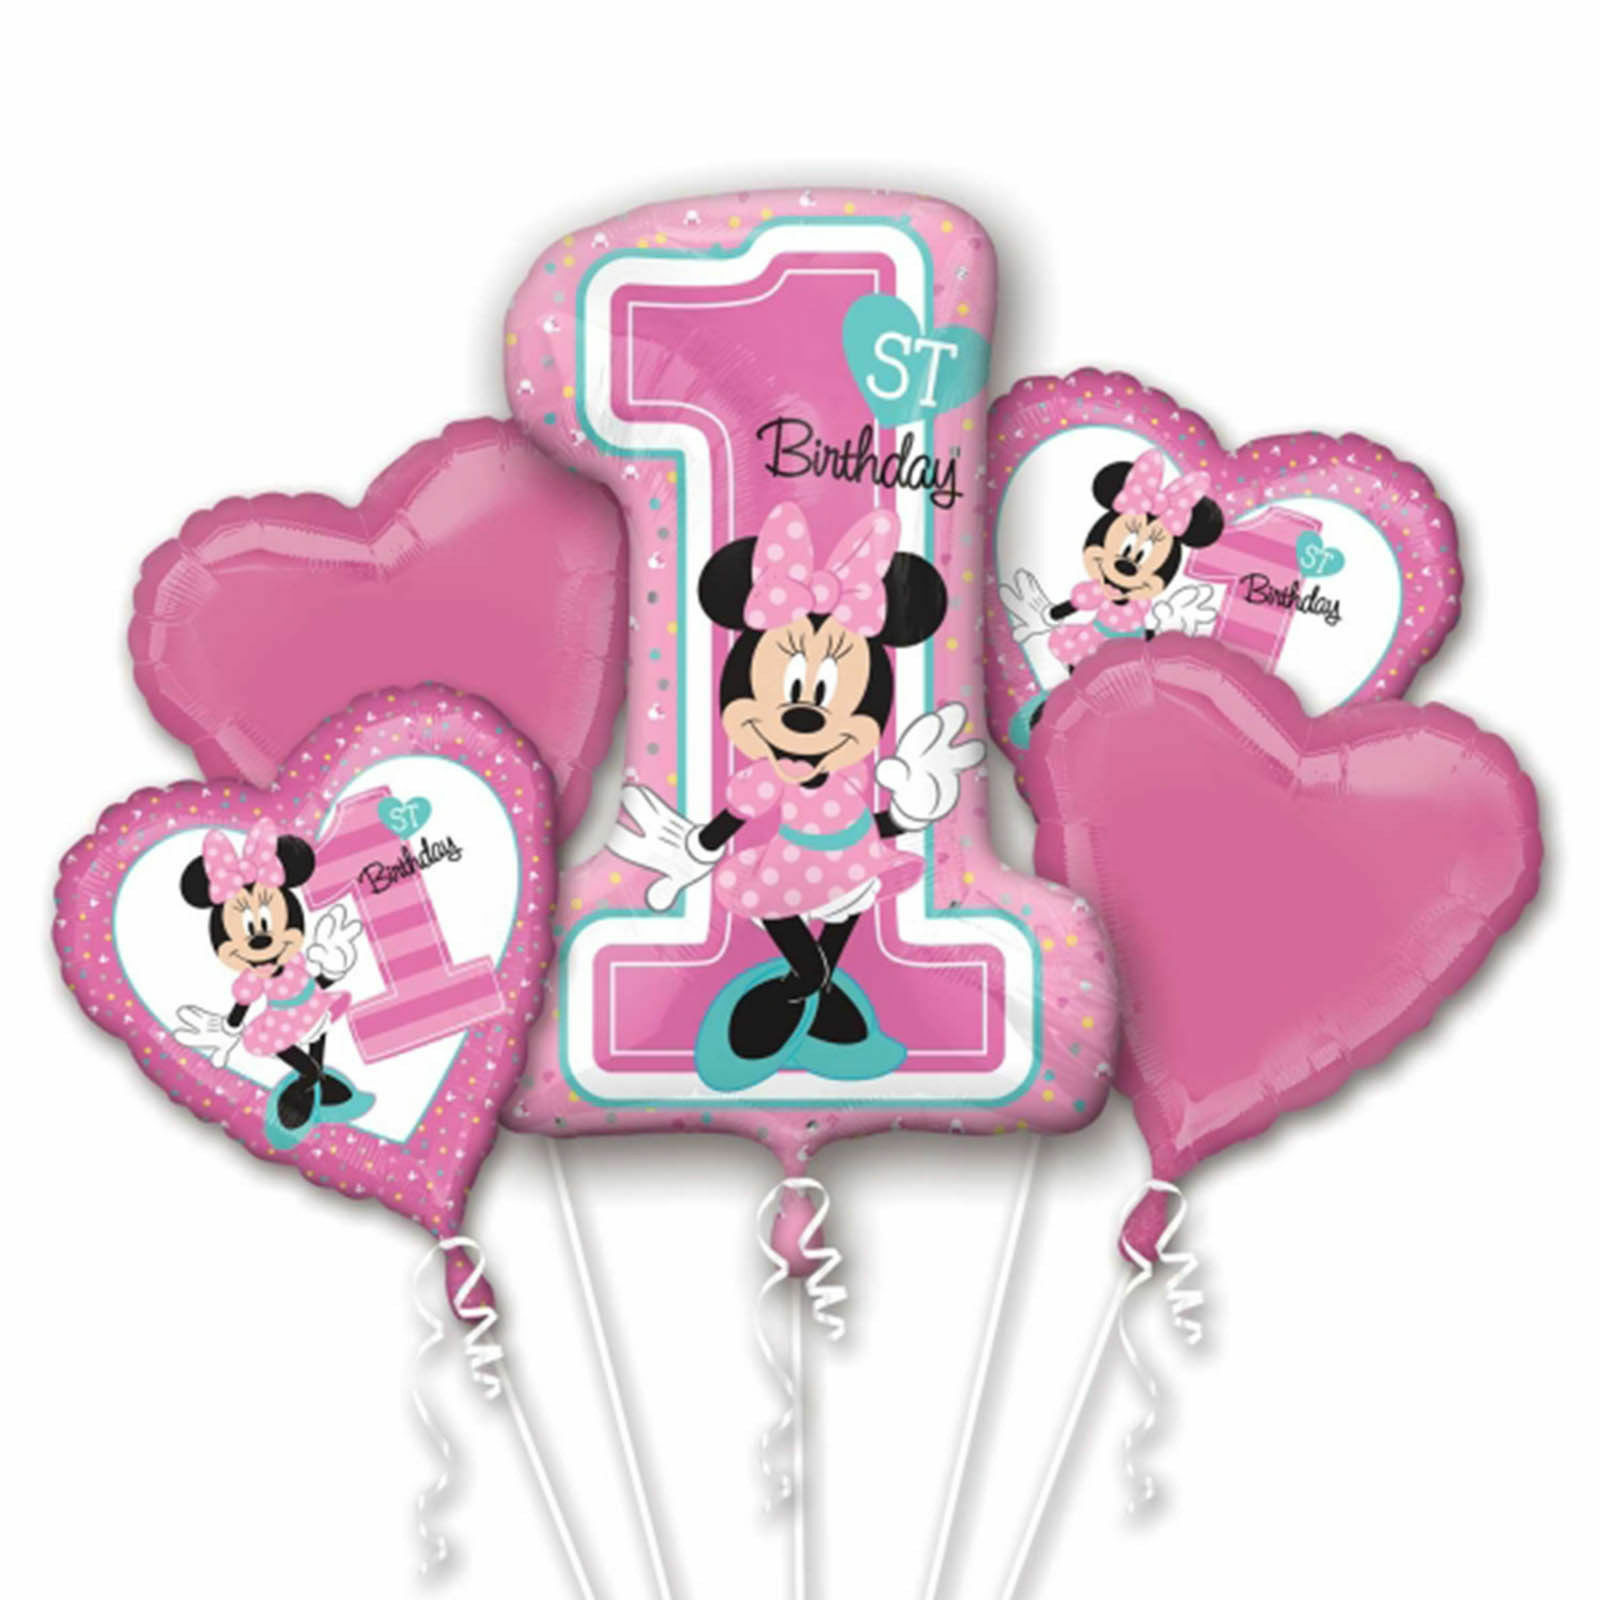 NEW Baby Minnie Mouse 1ST Birthday Balloon Bouquet Party